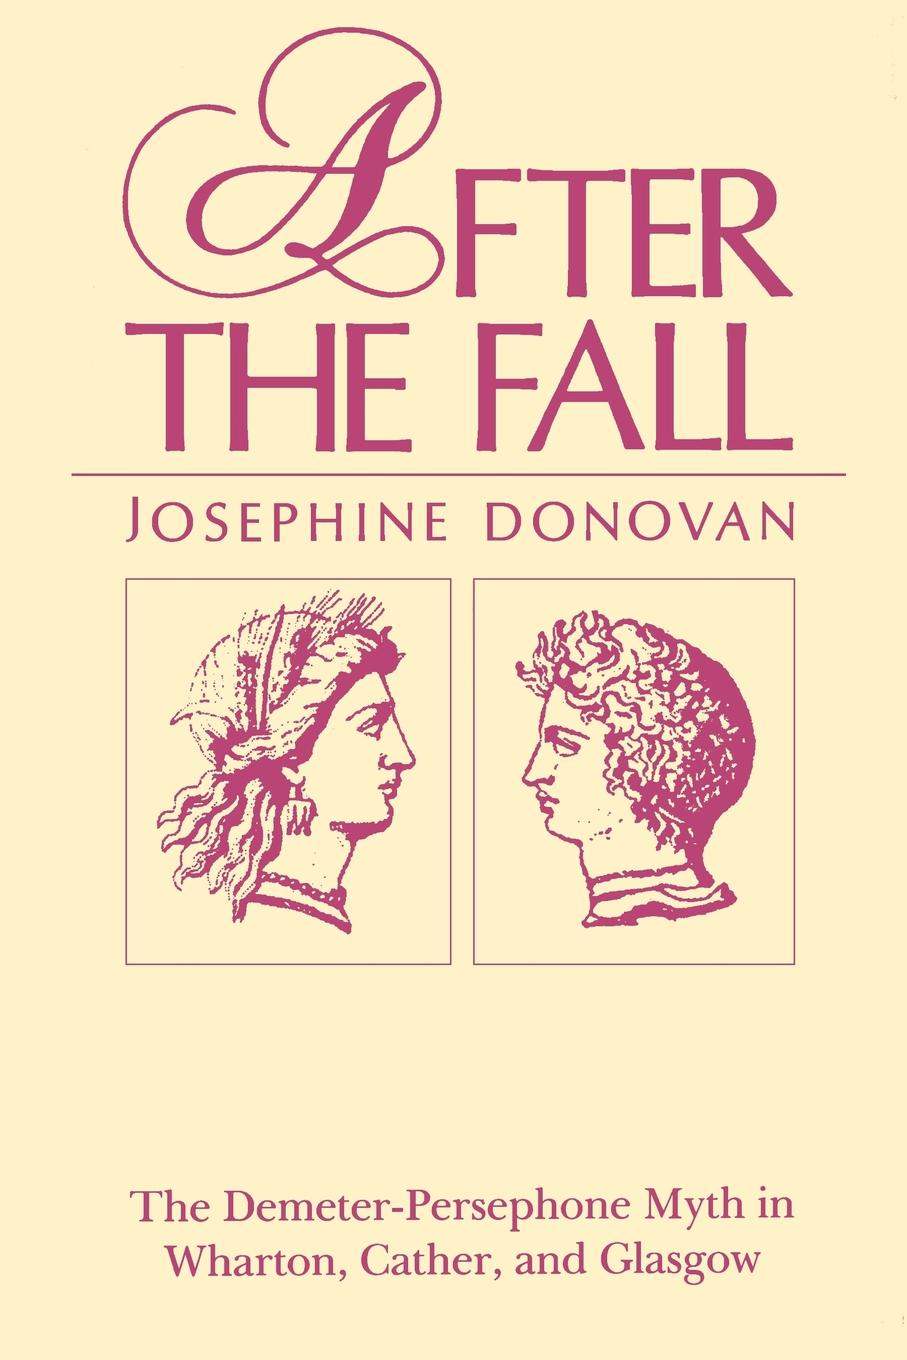 Josephine Donovan After the Fall. The Demeter-Persephone Myth in Wharton, Cather, and Glasgow a s byatt rebecca swift imagining characters six conversations about women writers jane austen charlotte bronte george eli ot willa cather iris murdoch and t